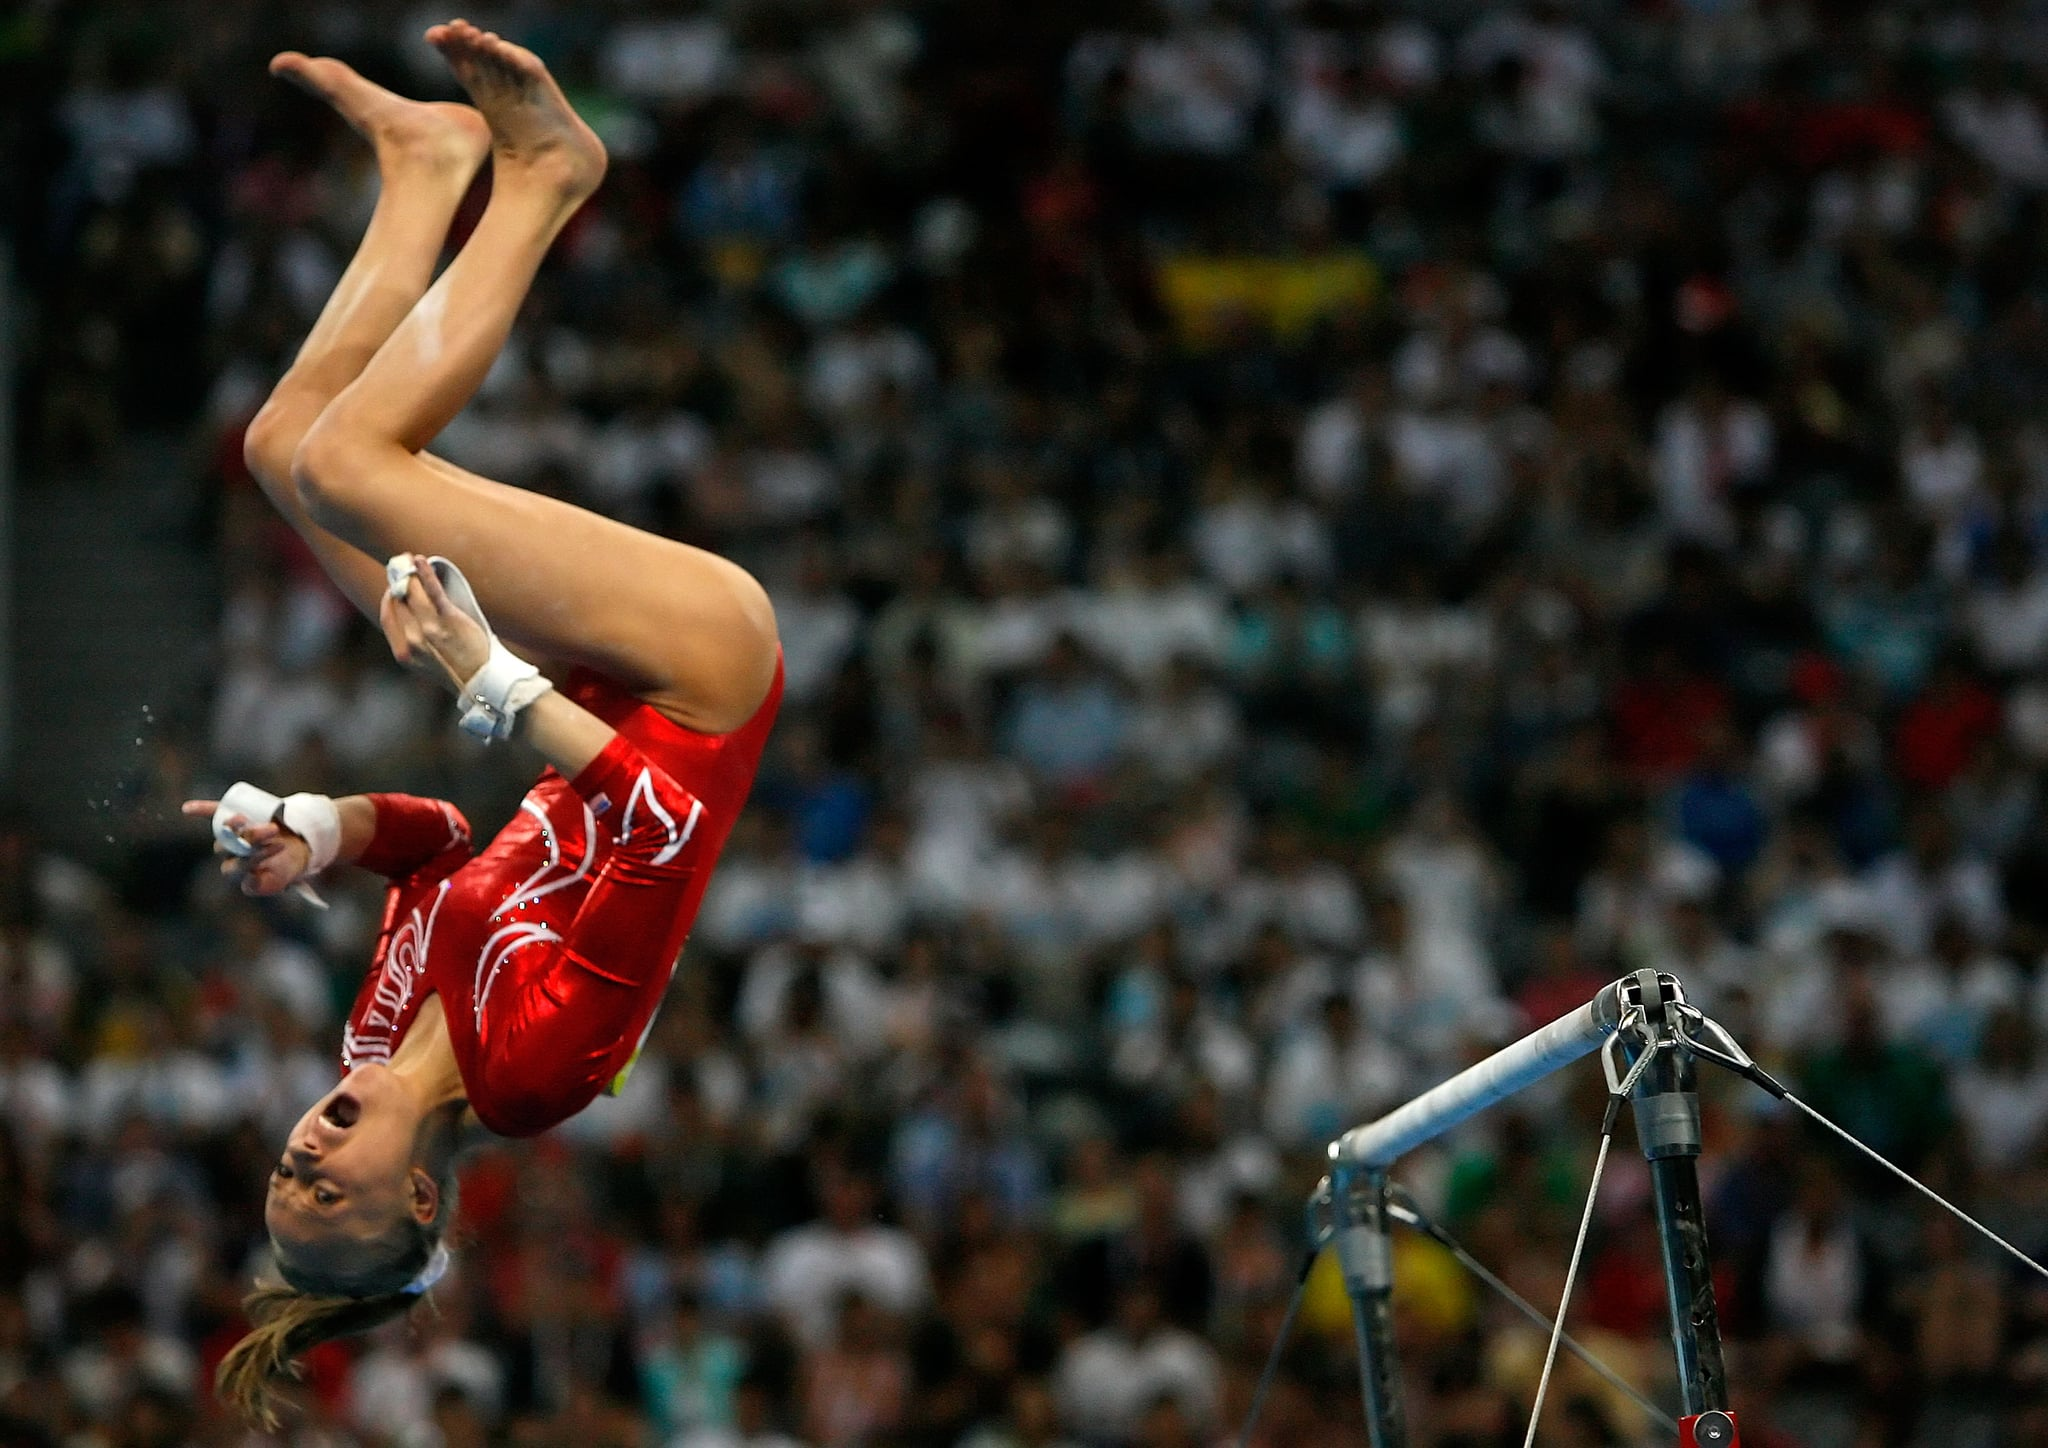 Nastia Liukin of the United States competes in the uneven bars.